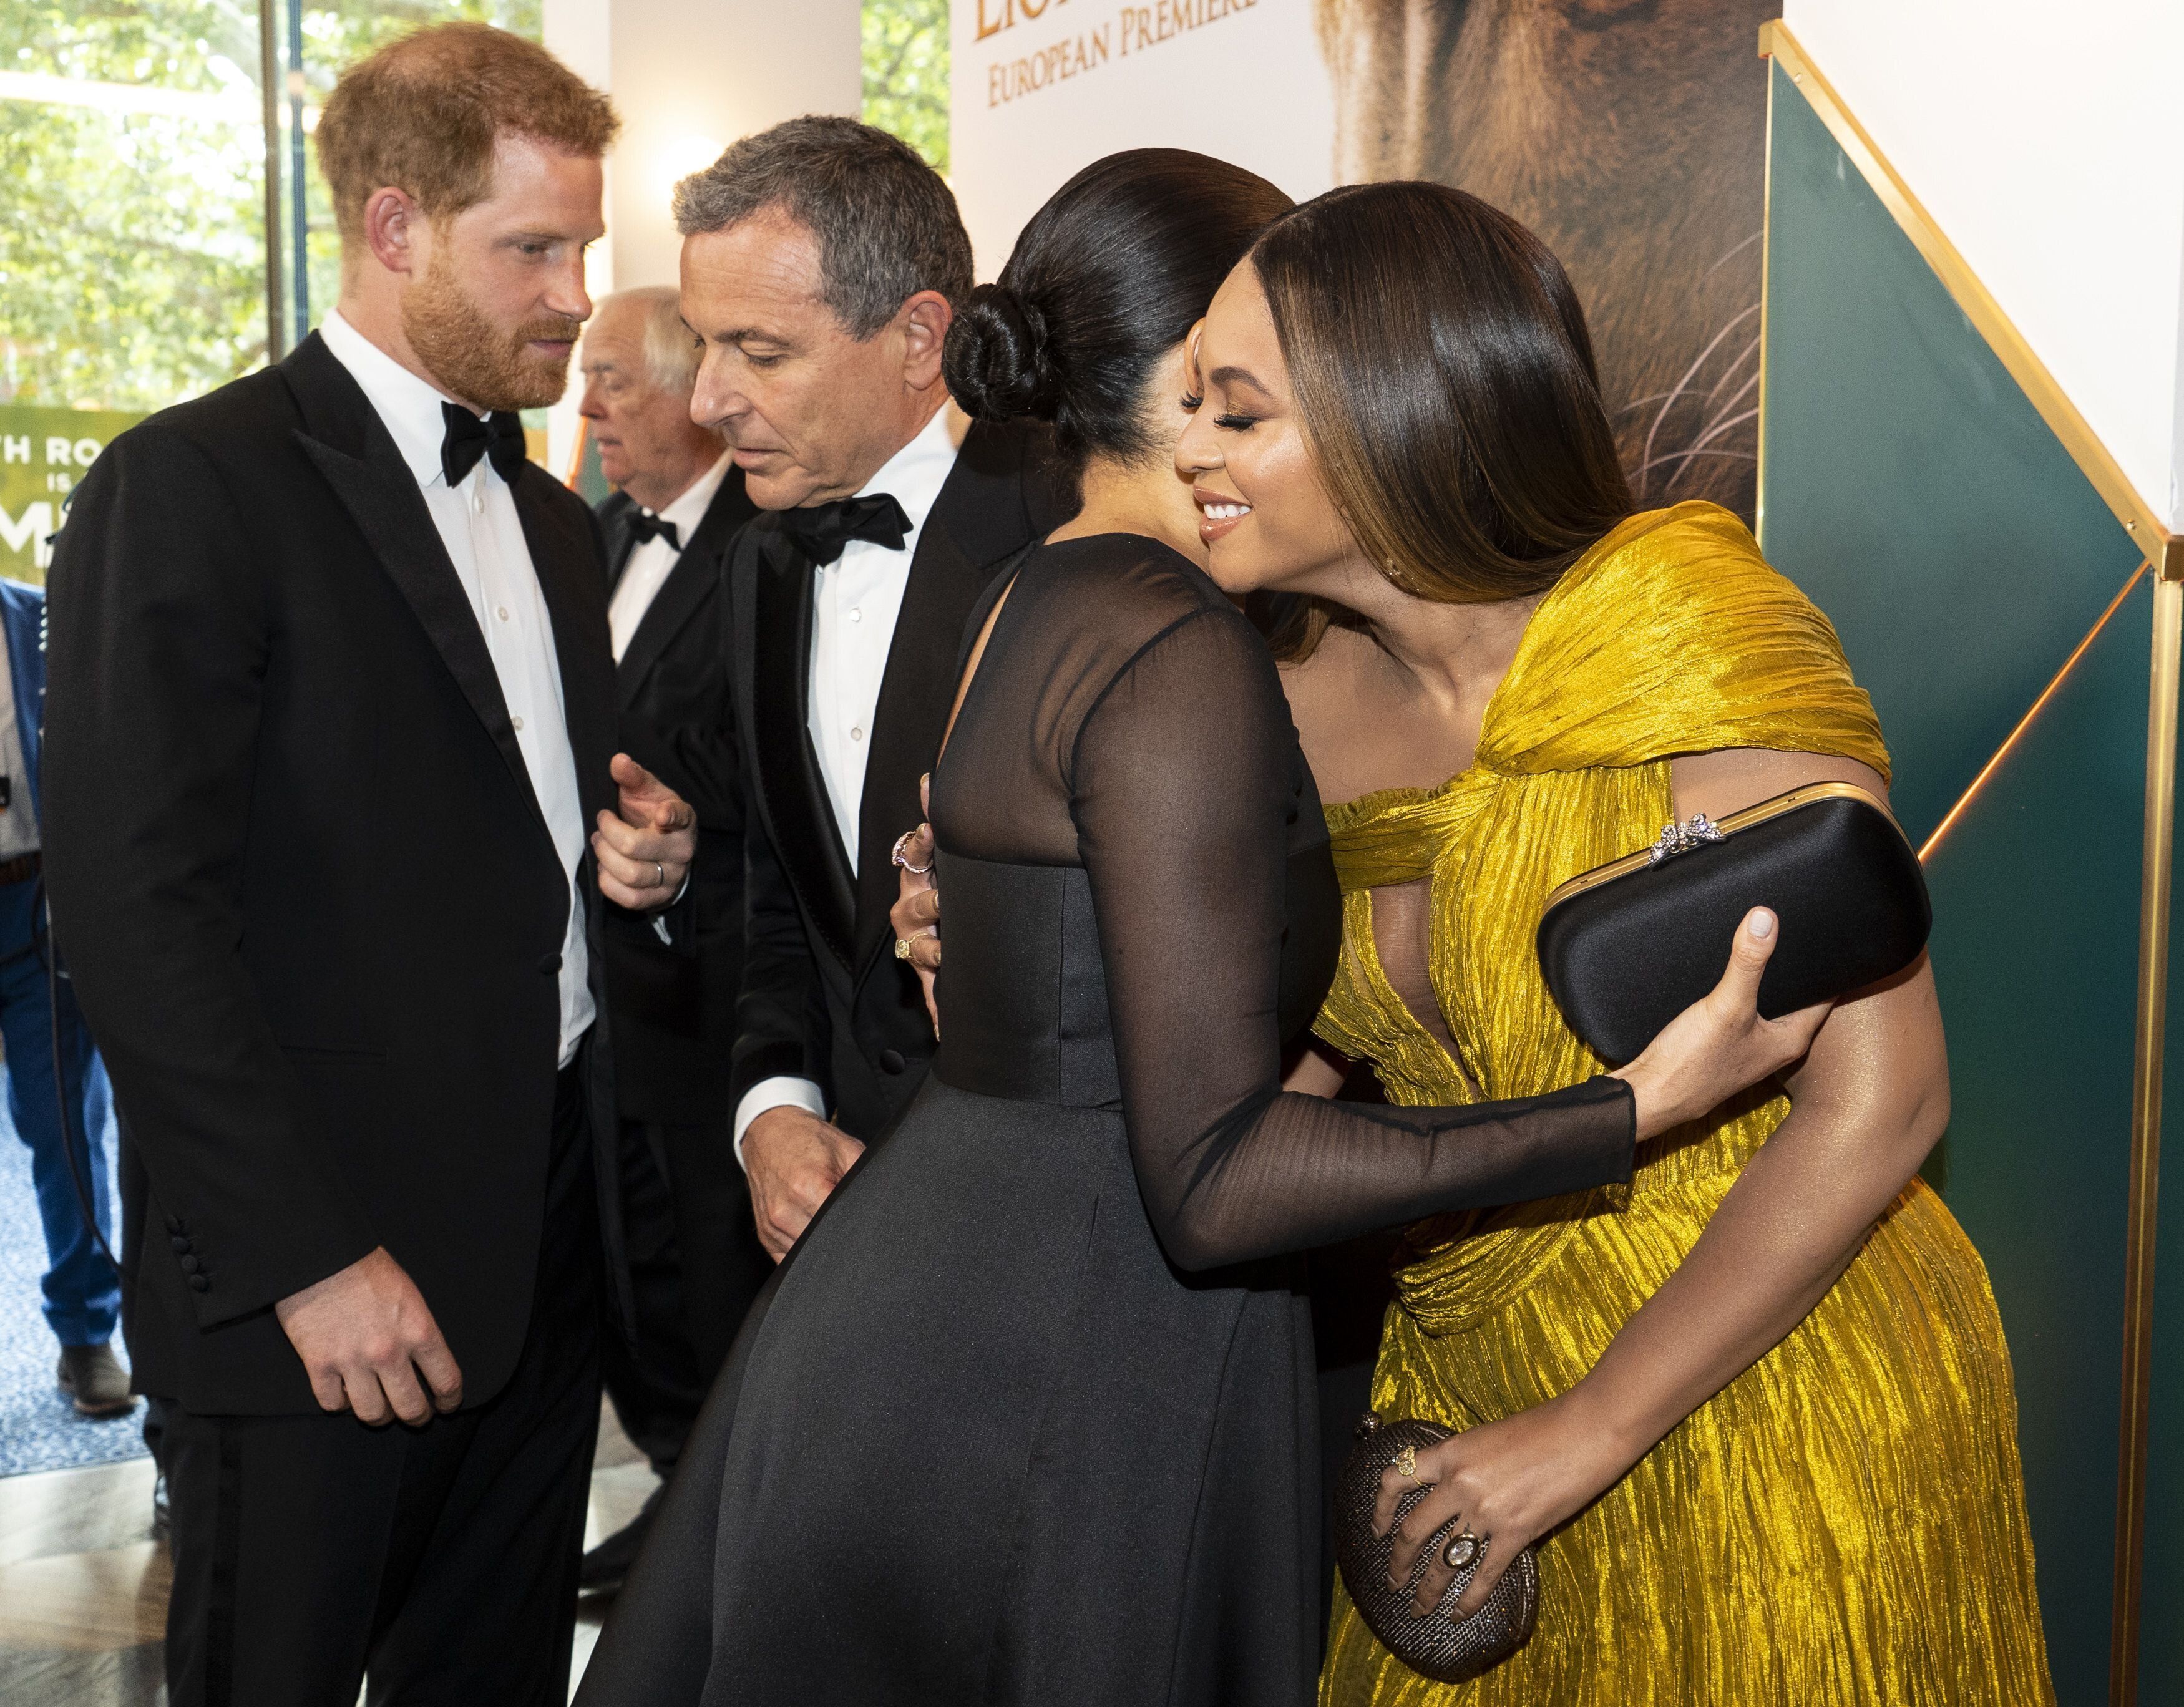 Meghan Markle Shares Heat Hug With Beyoncé At Lion King Premeire